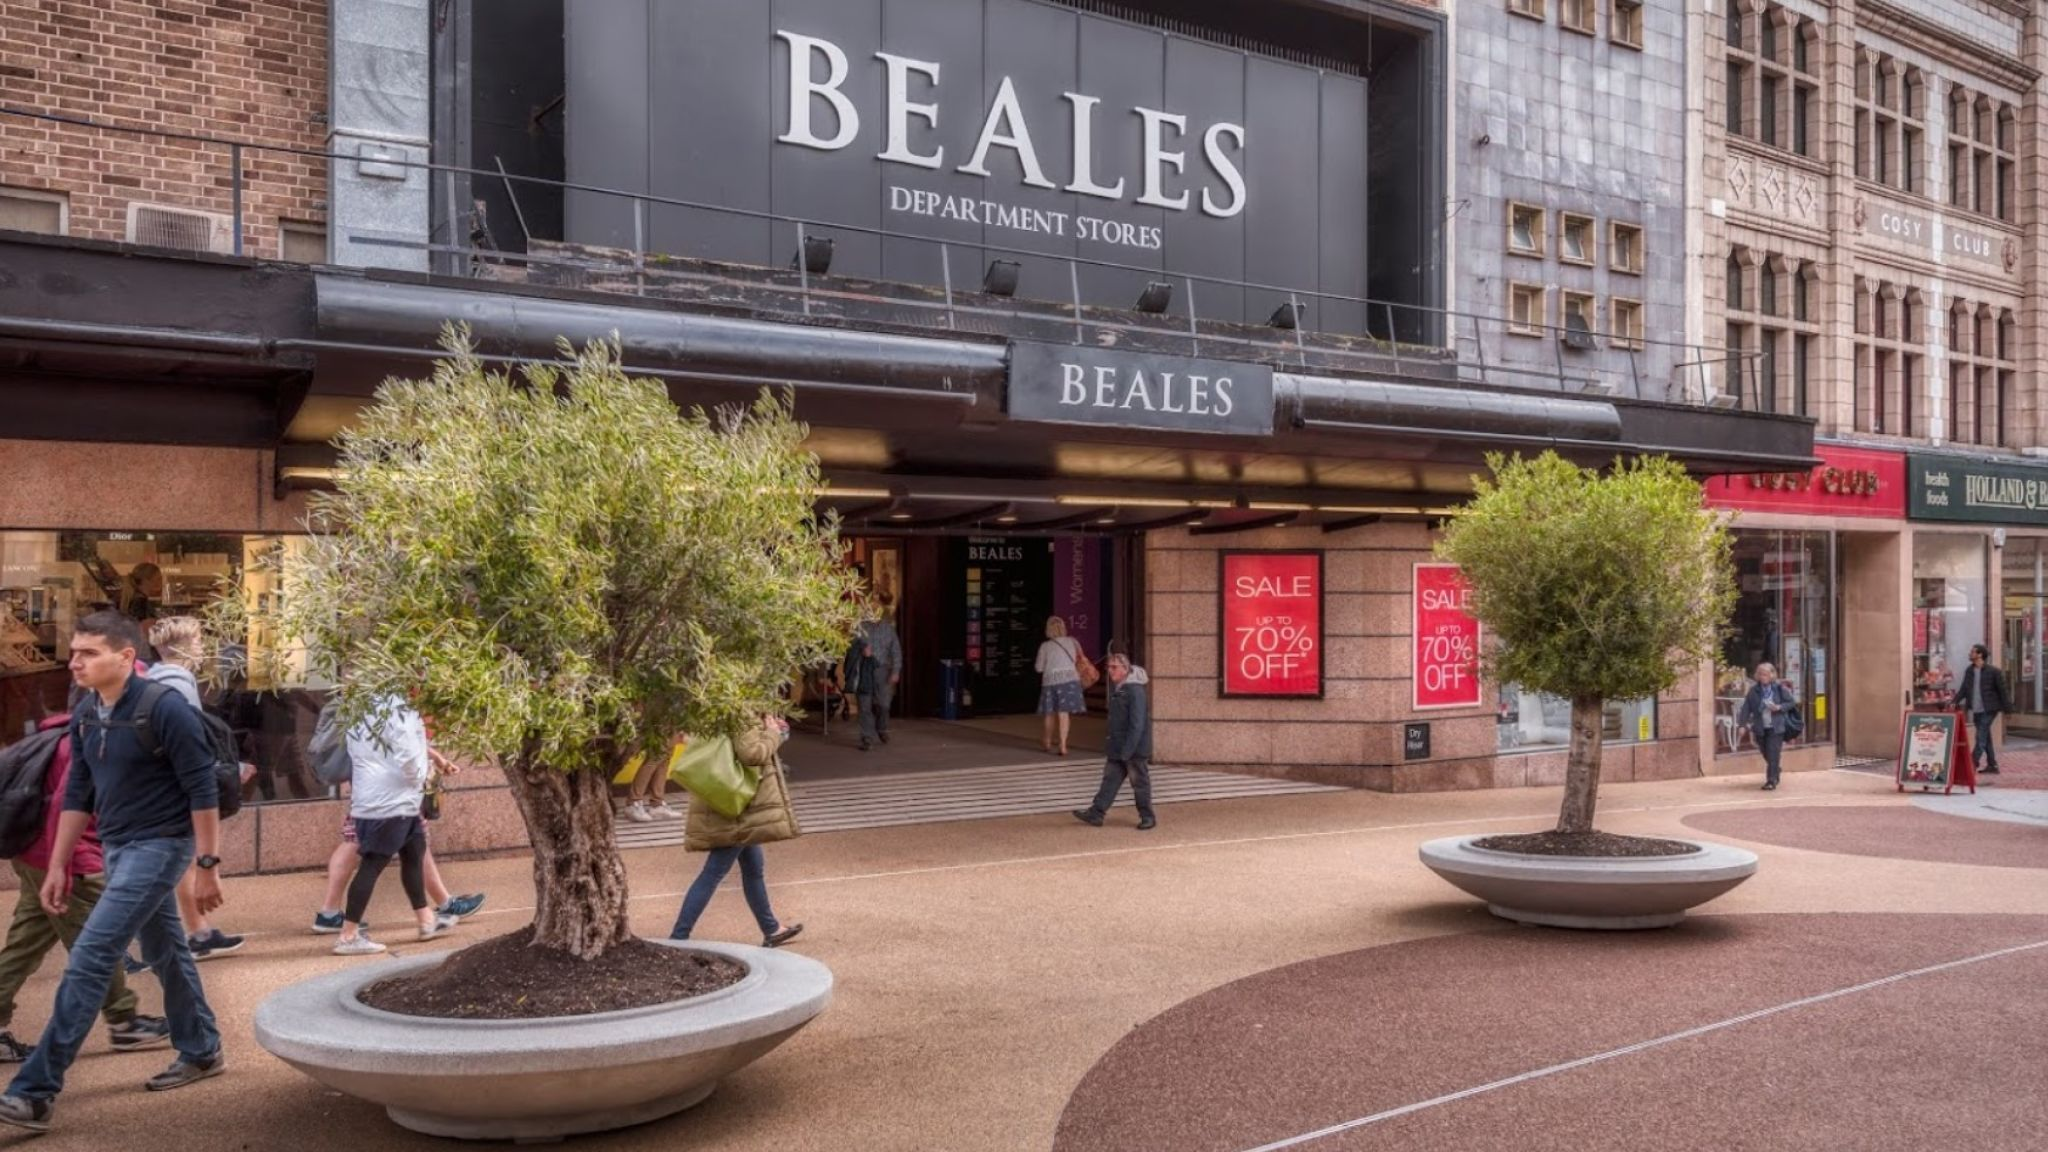 A Beales department store in Bournmouth. The company is reportedly on the brink of collapse. Photo: Beales